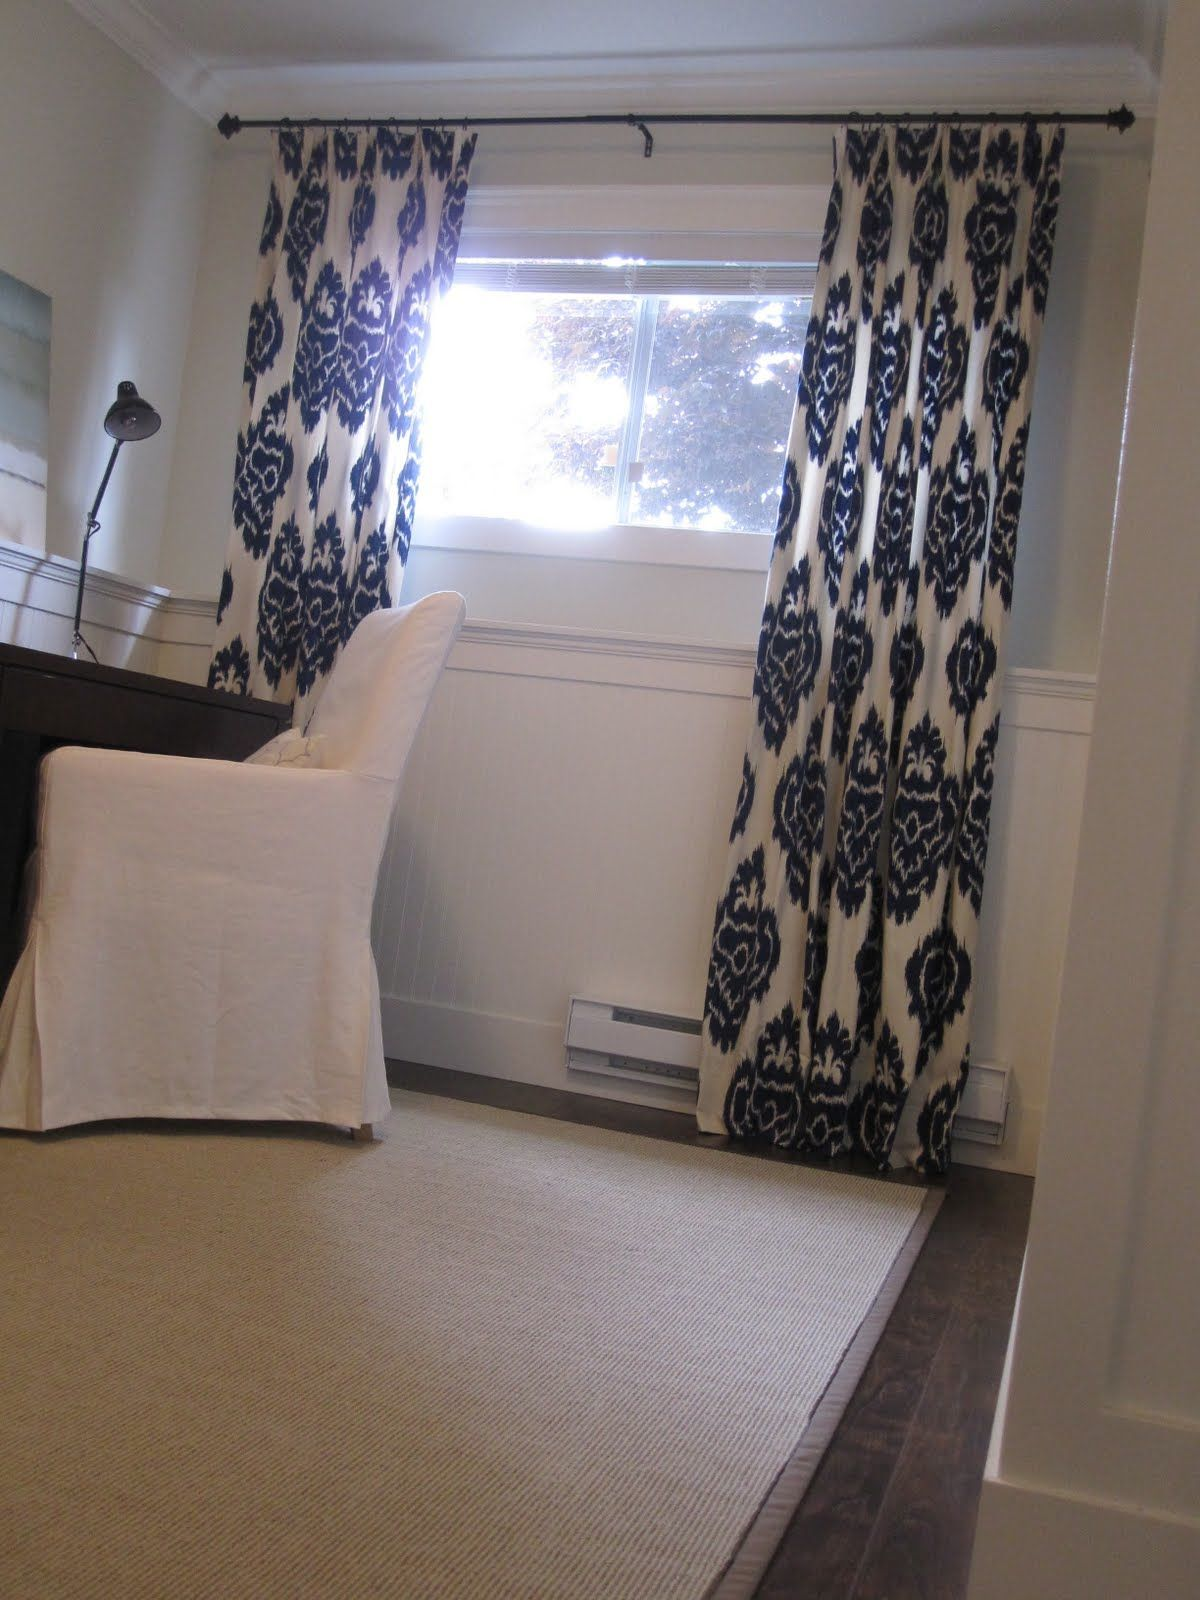 small window big curtains   Basement window curtains, Small window ...